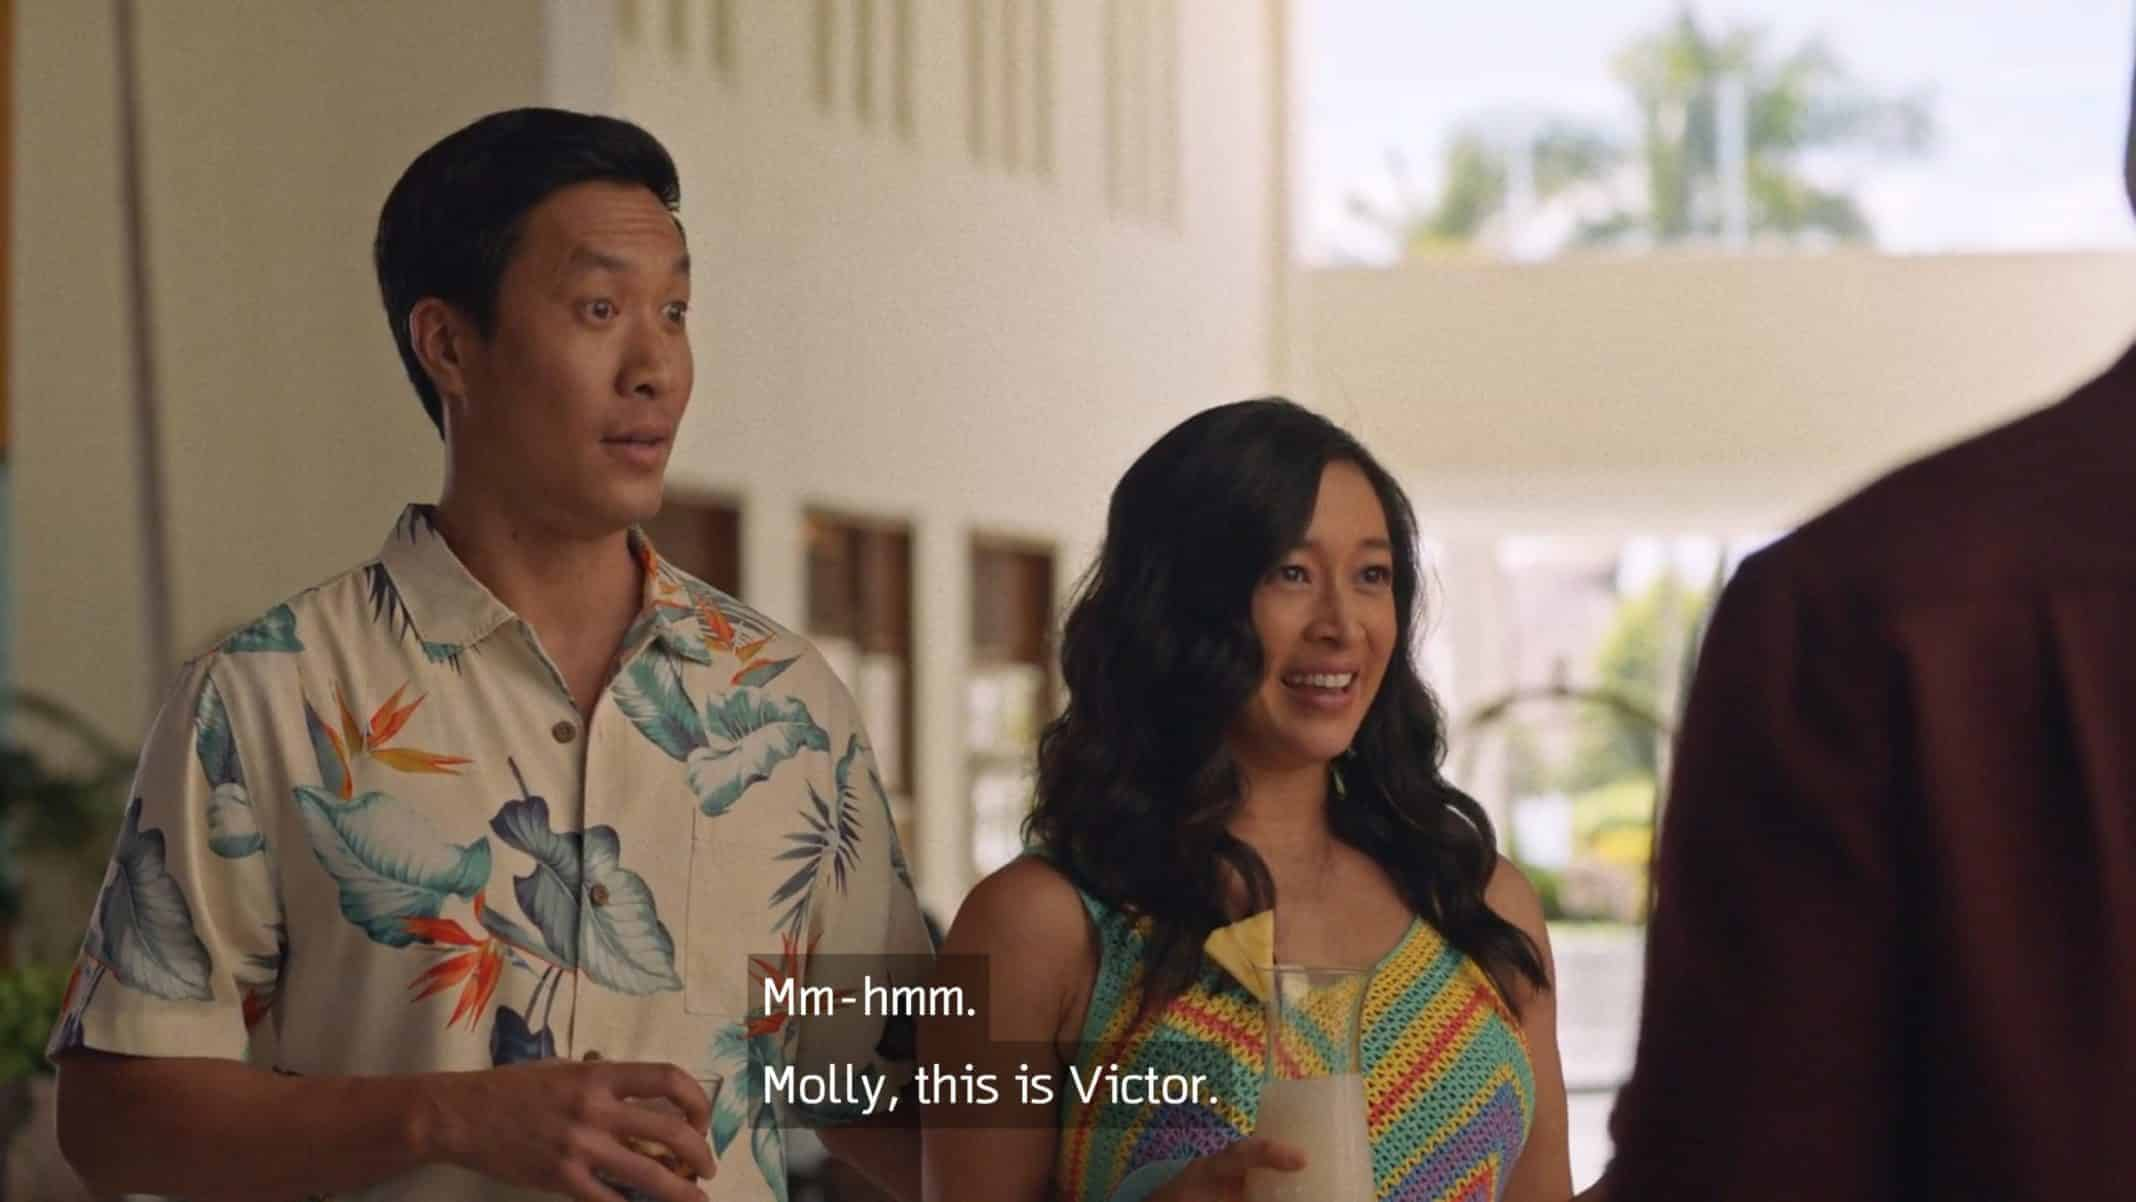 Victor (Stephen Oyoung) and Lydia (Camille Chen) being introduced.